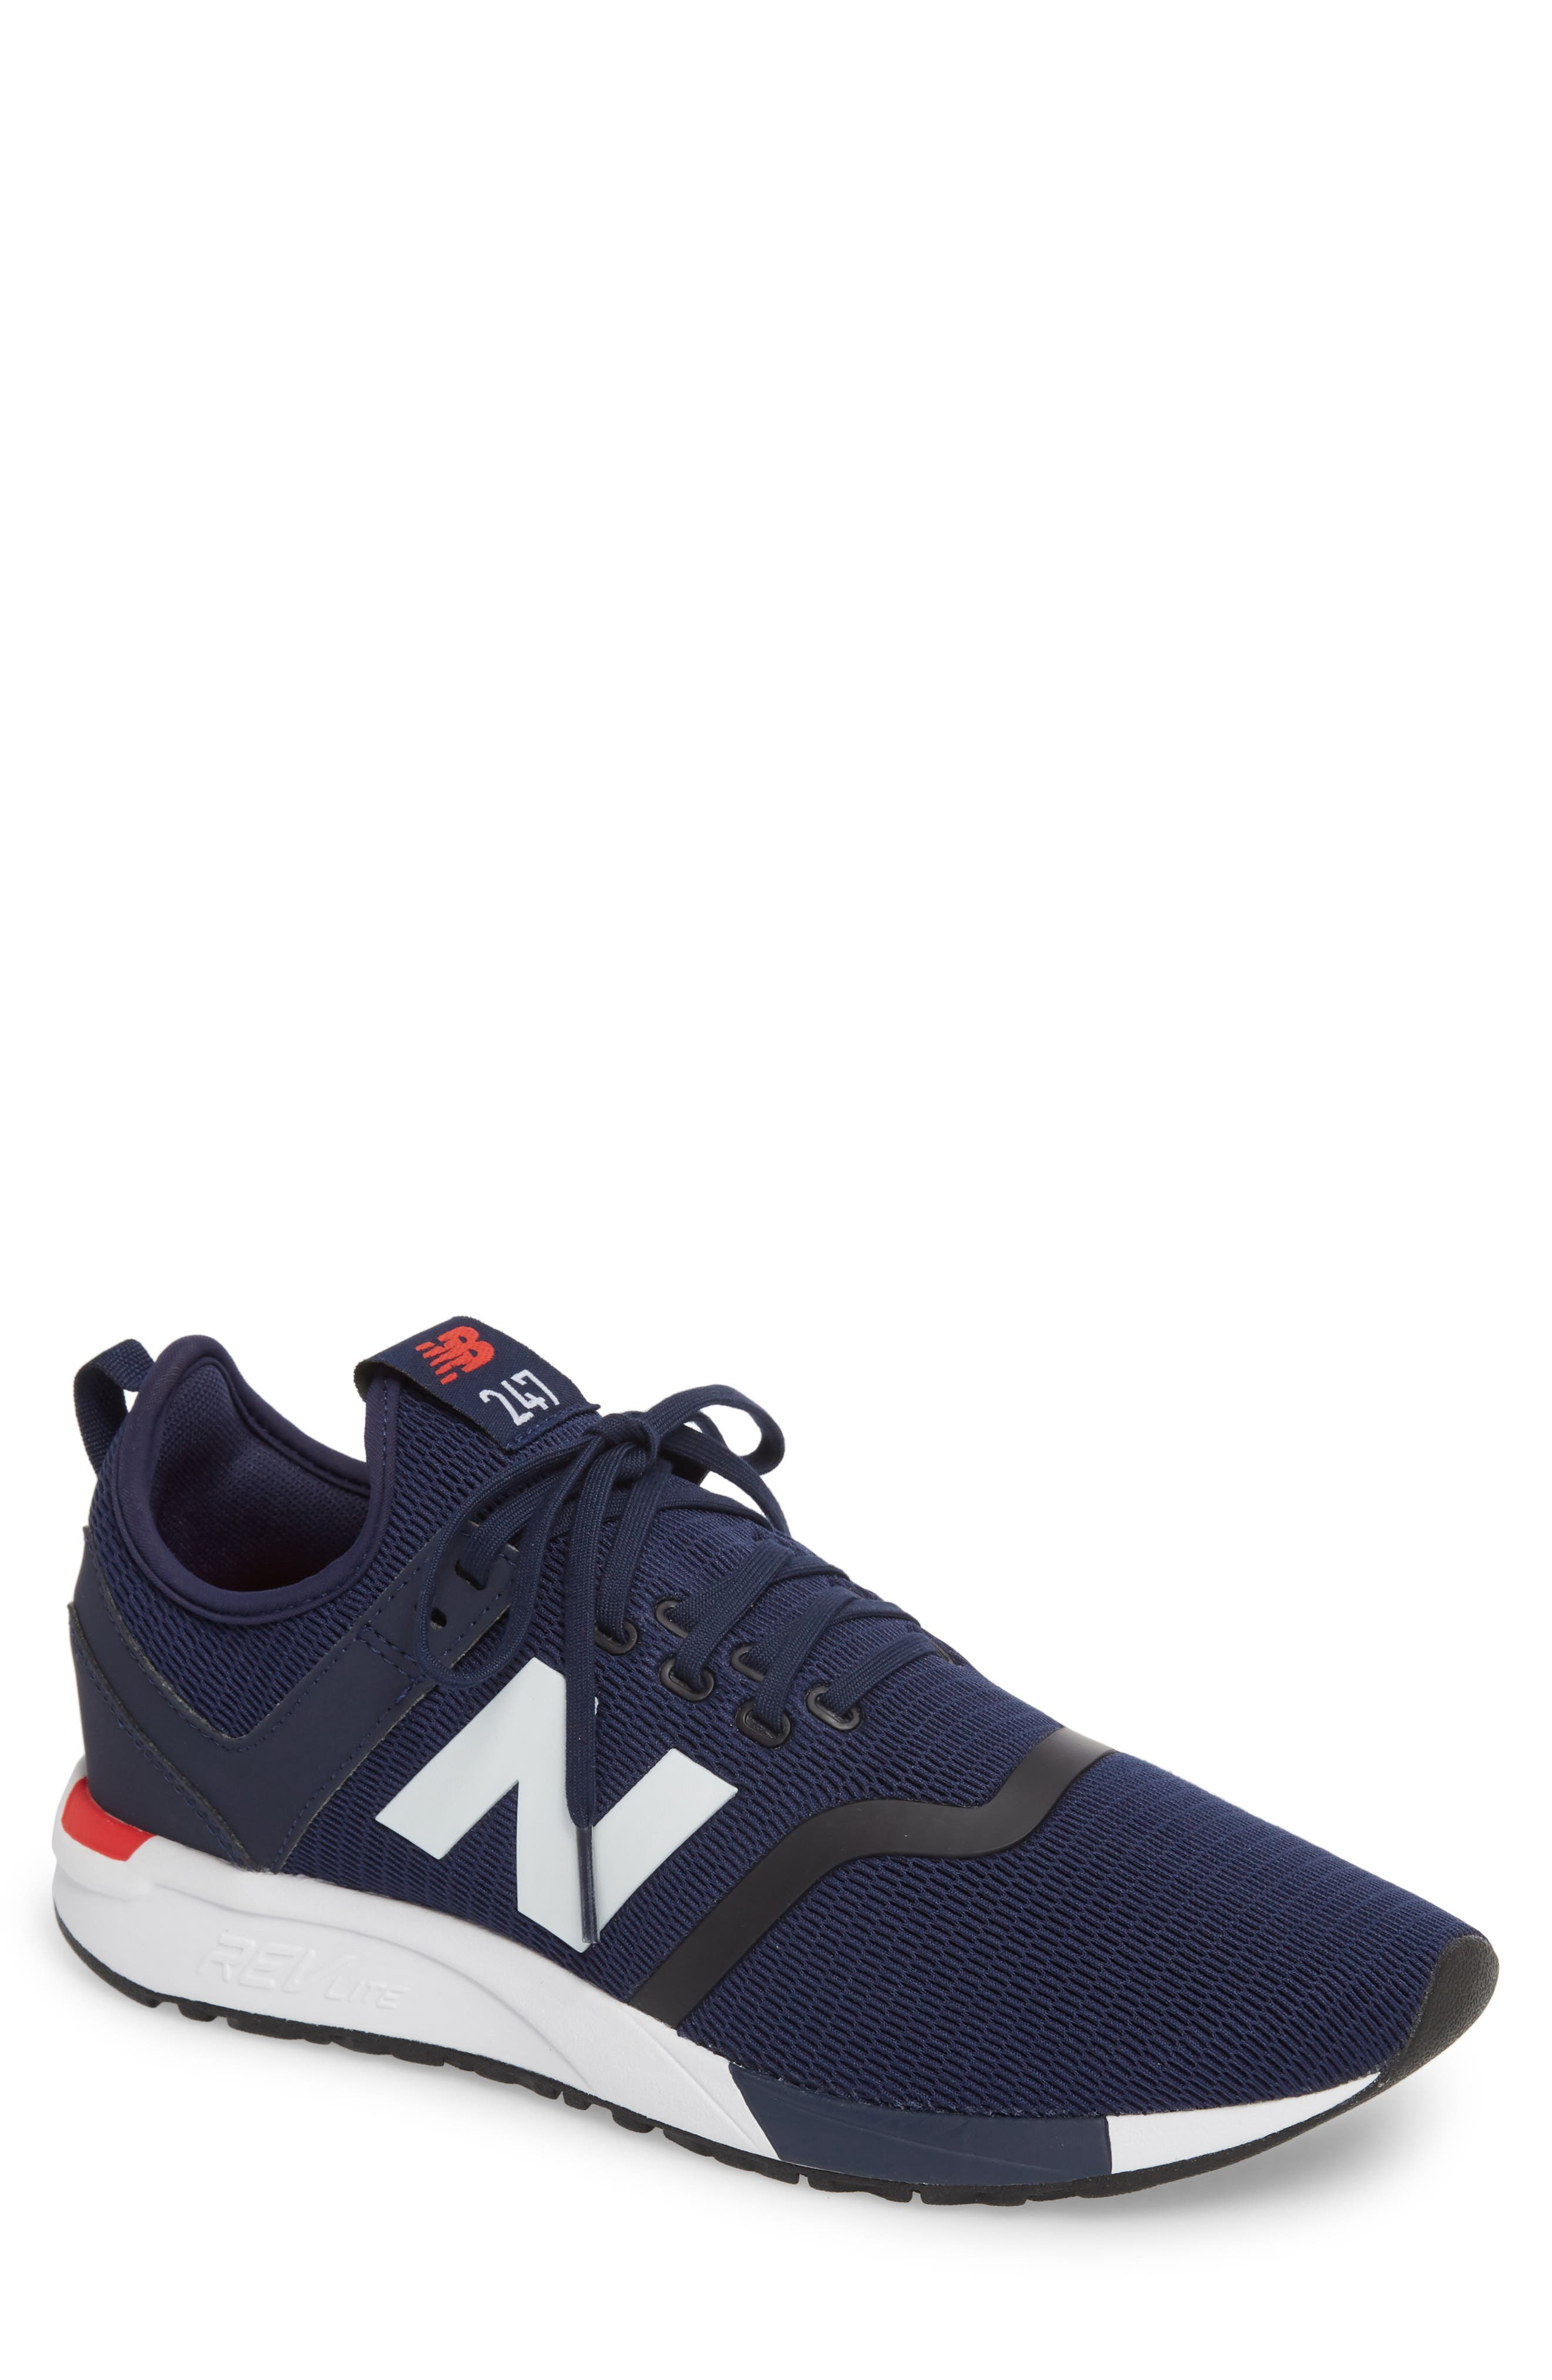 NEW BALANCE Men'S 247 Lace Up Sneakers in Pigment